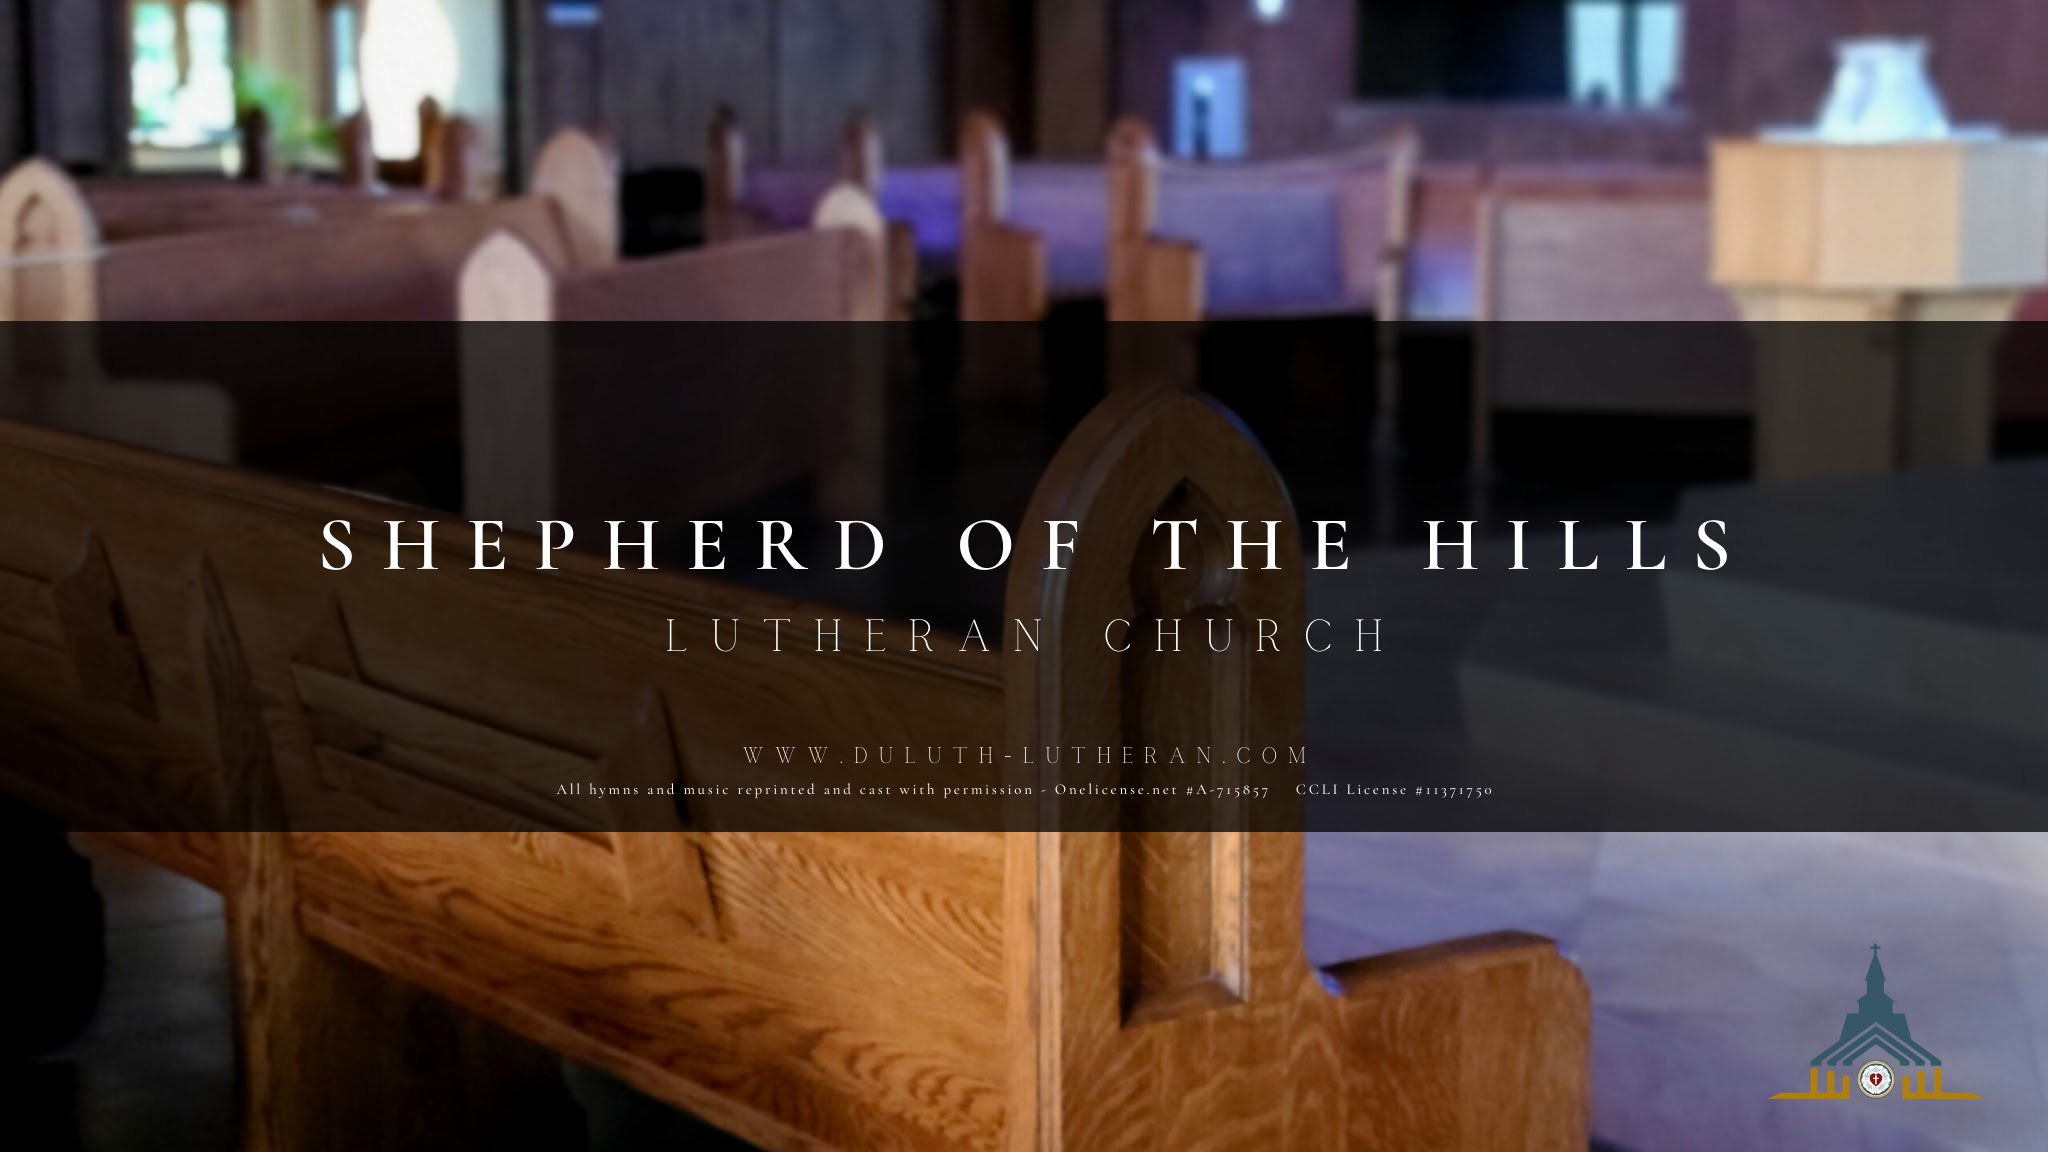 Shepherd of the Hills Lutheran Church Duluth MN